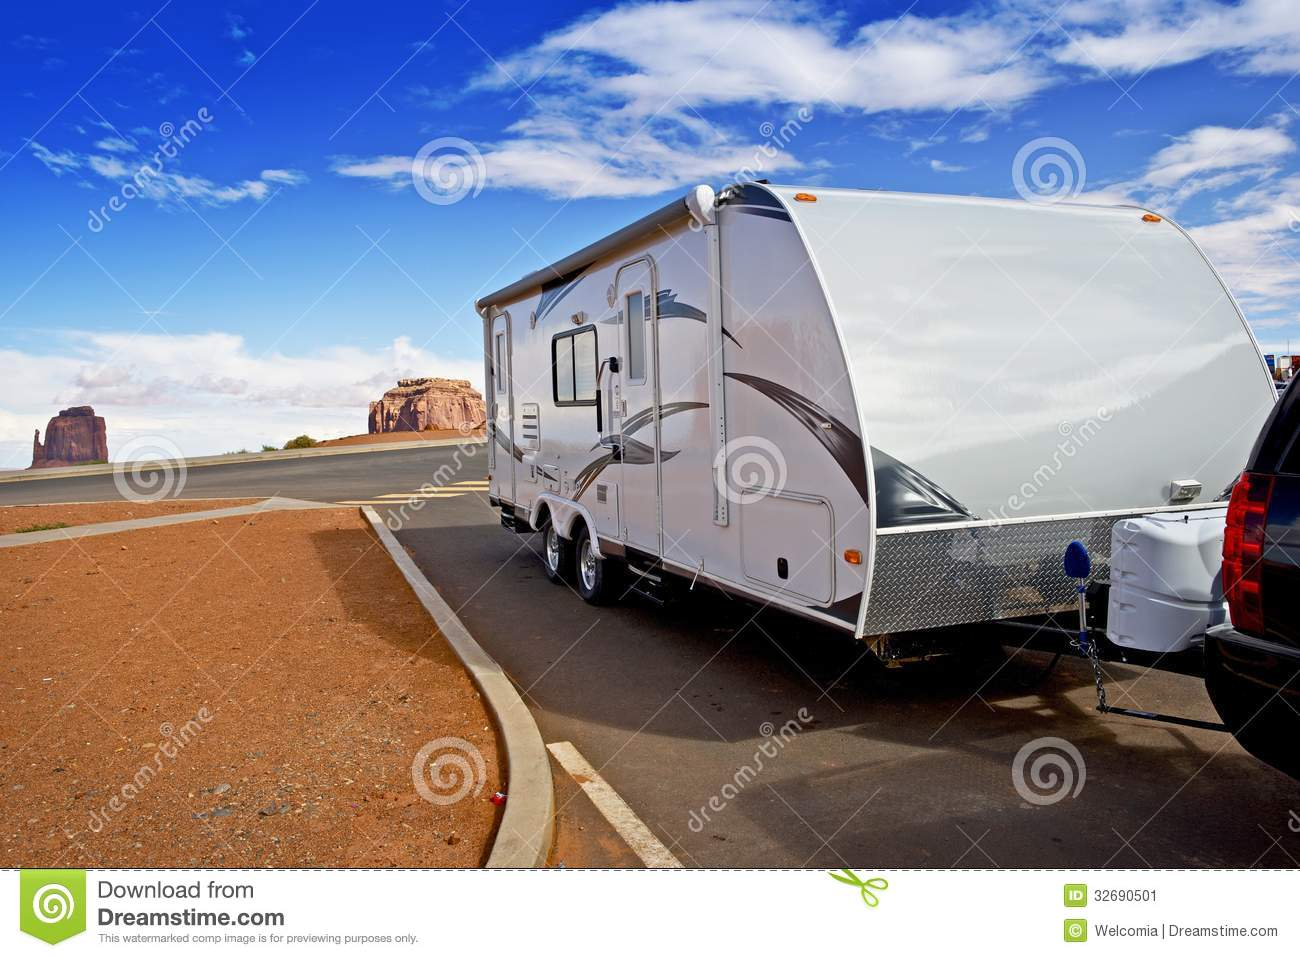 camping trailer usa electrical panel single line diagram recreational vehicle rv stock image of summer